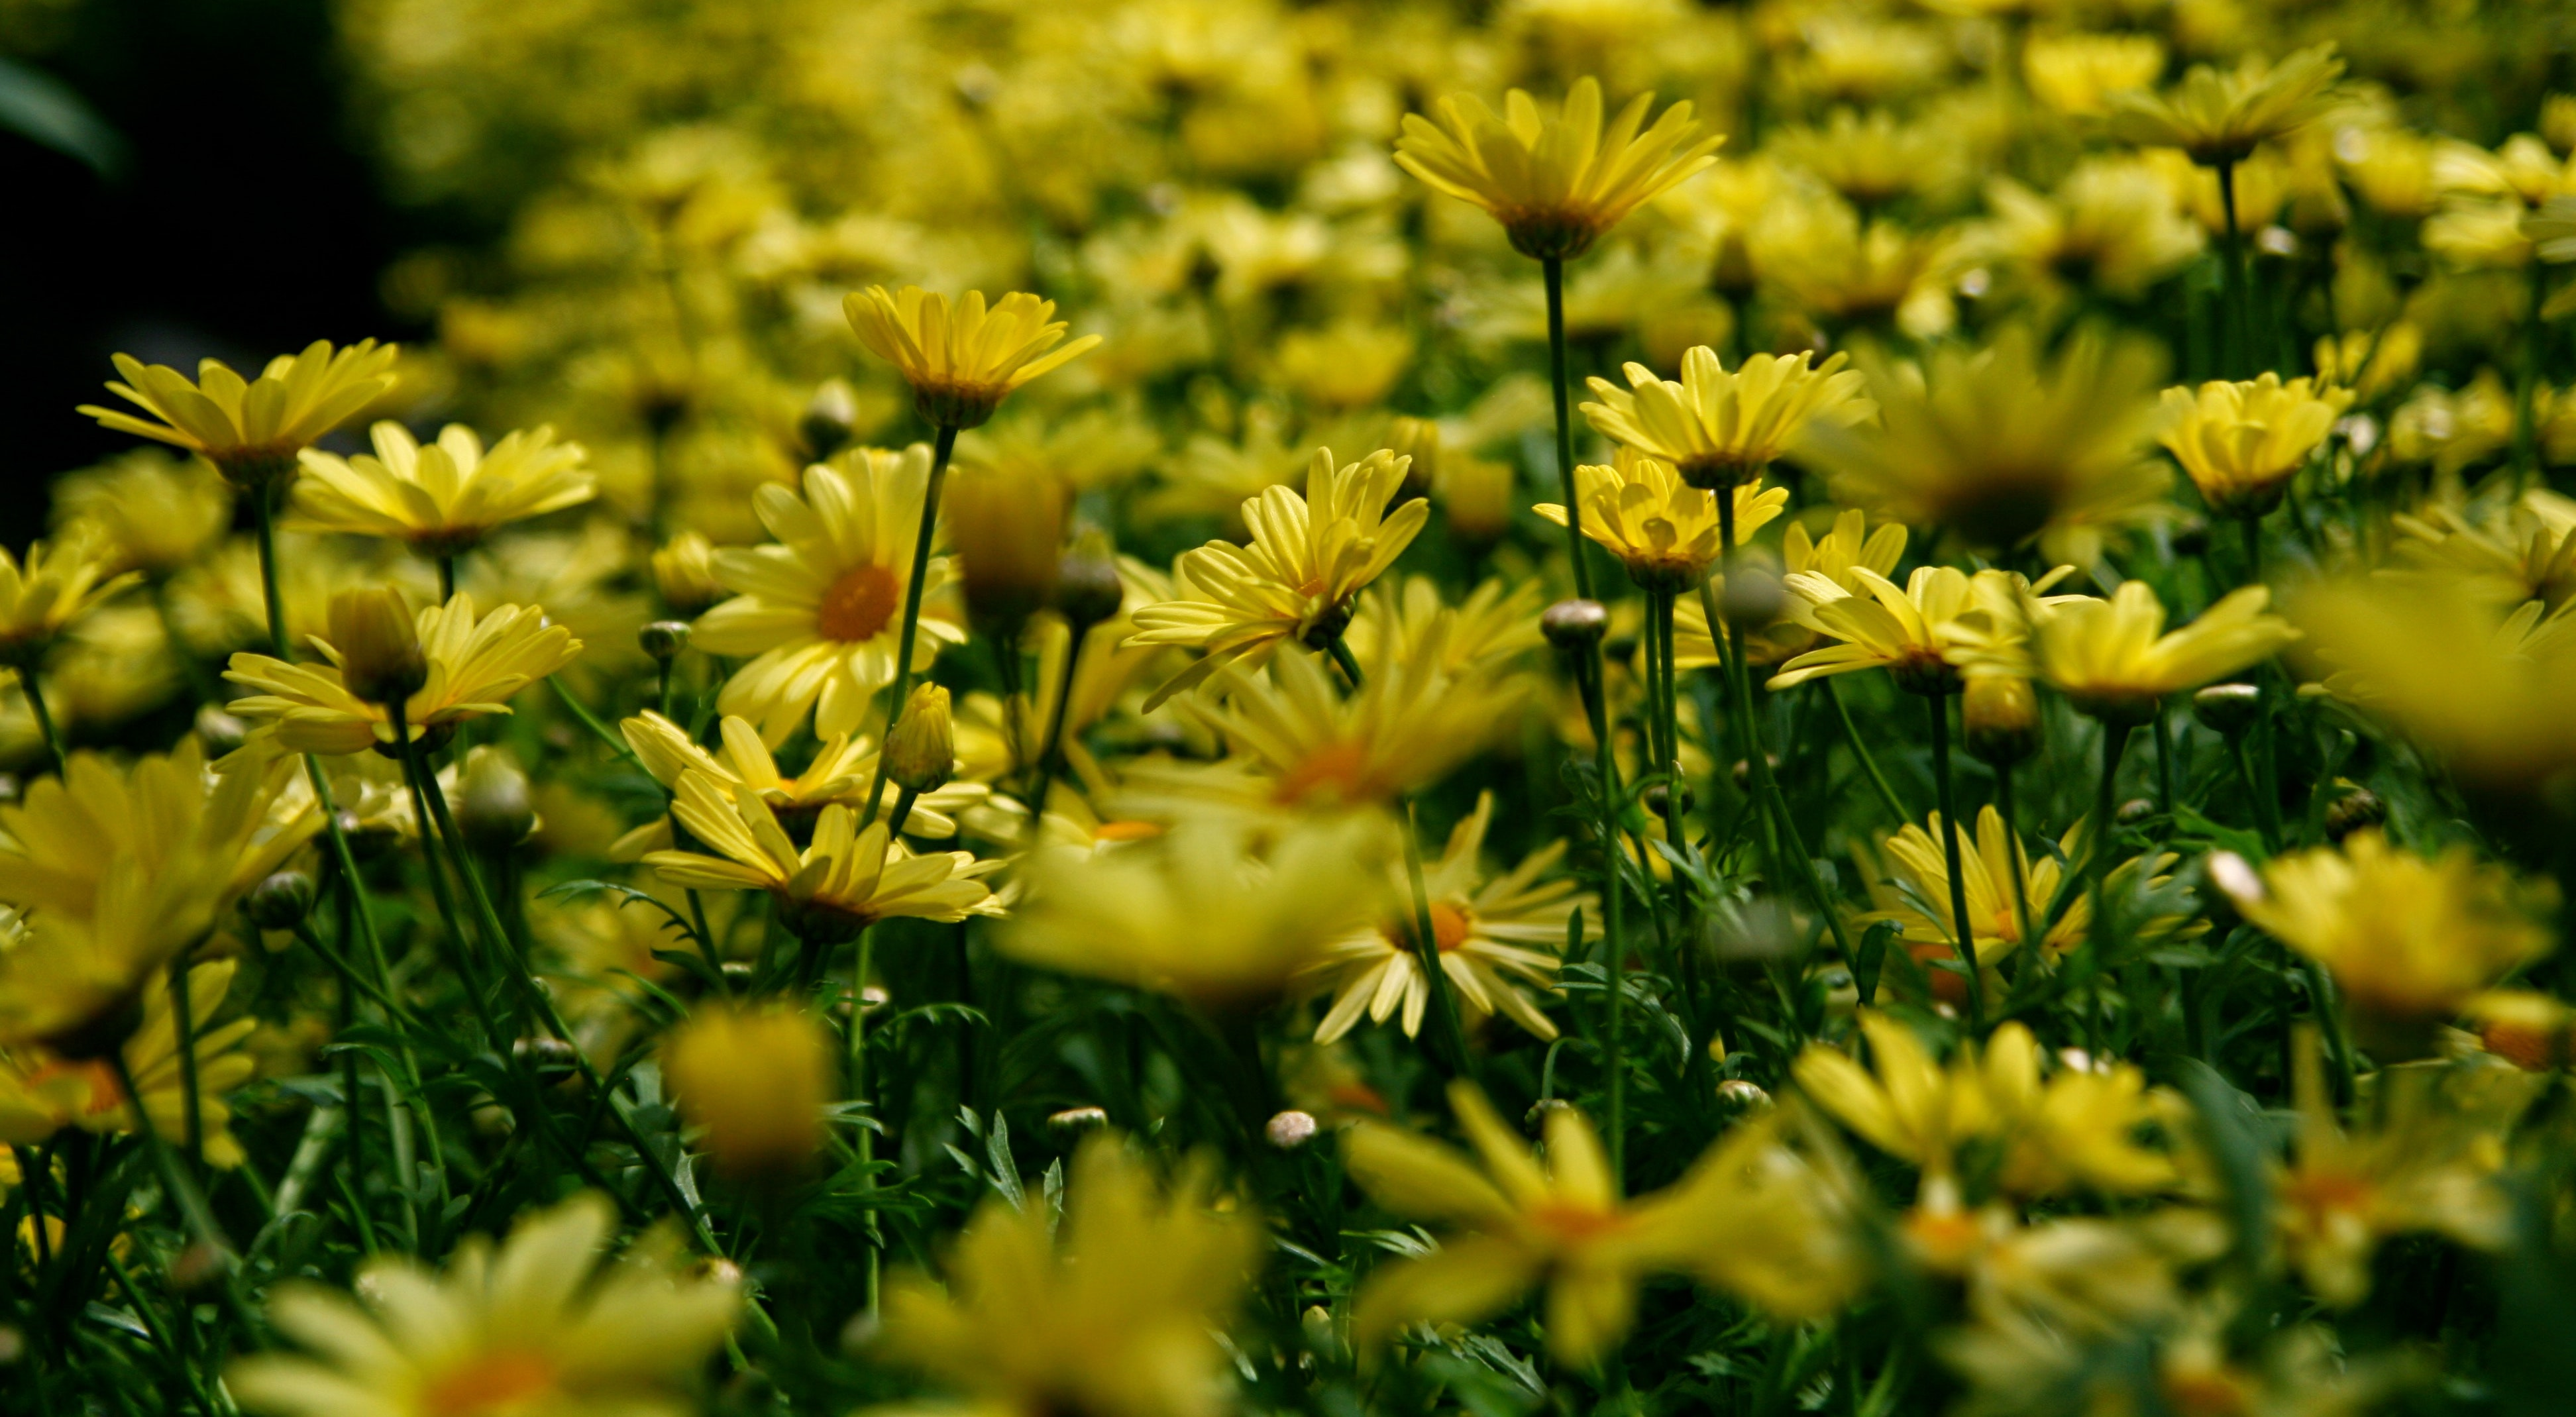 Yellow Petal Flower Field, Background, Beautiful flowers, Daisies, Flora, HQ Photo